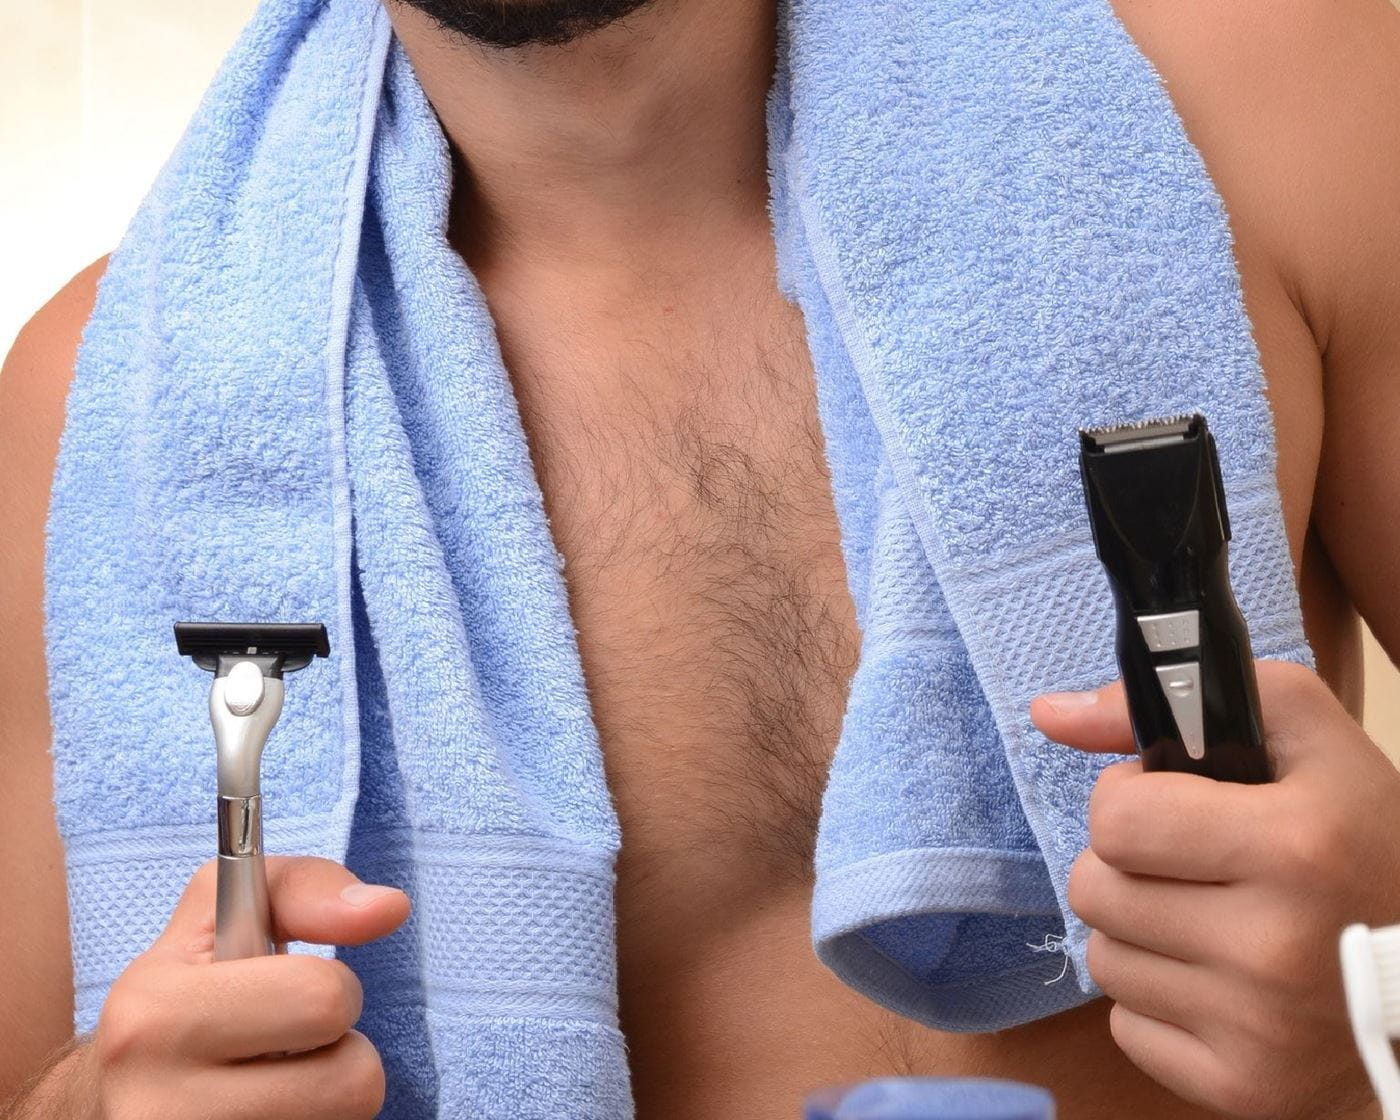 Shaving the male intimate area